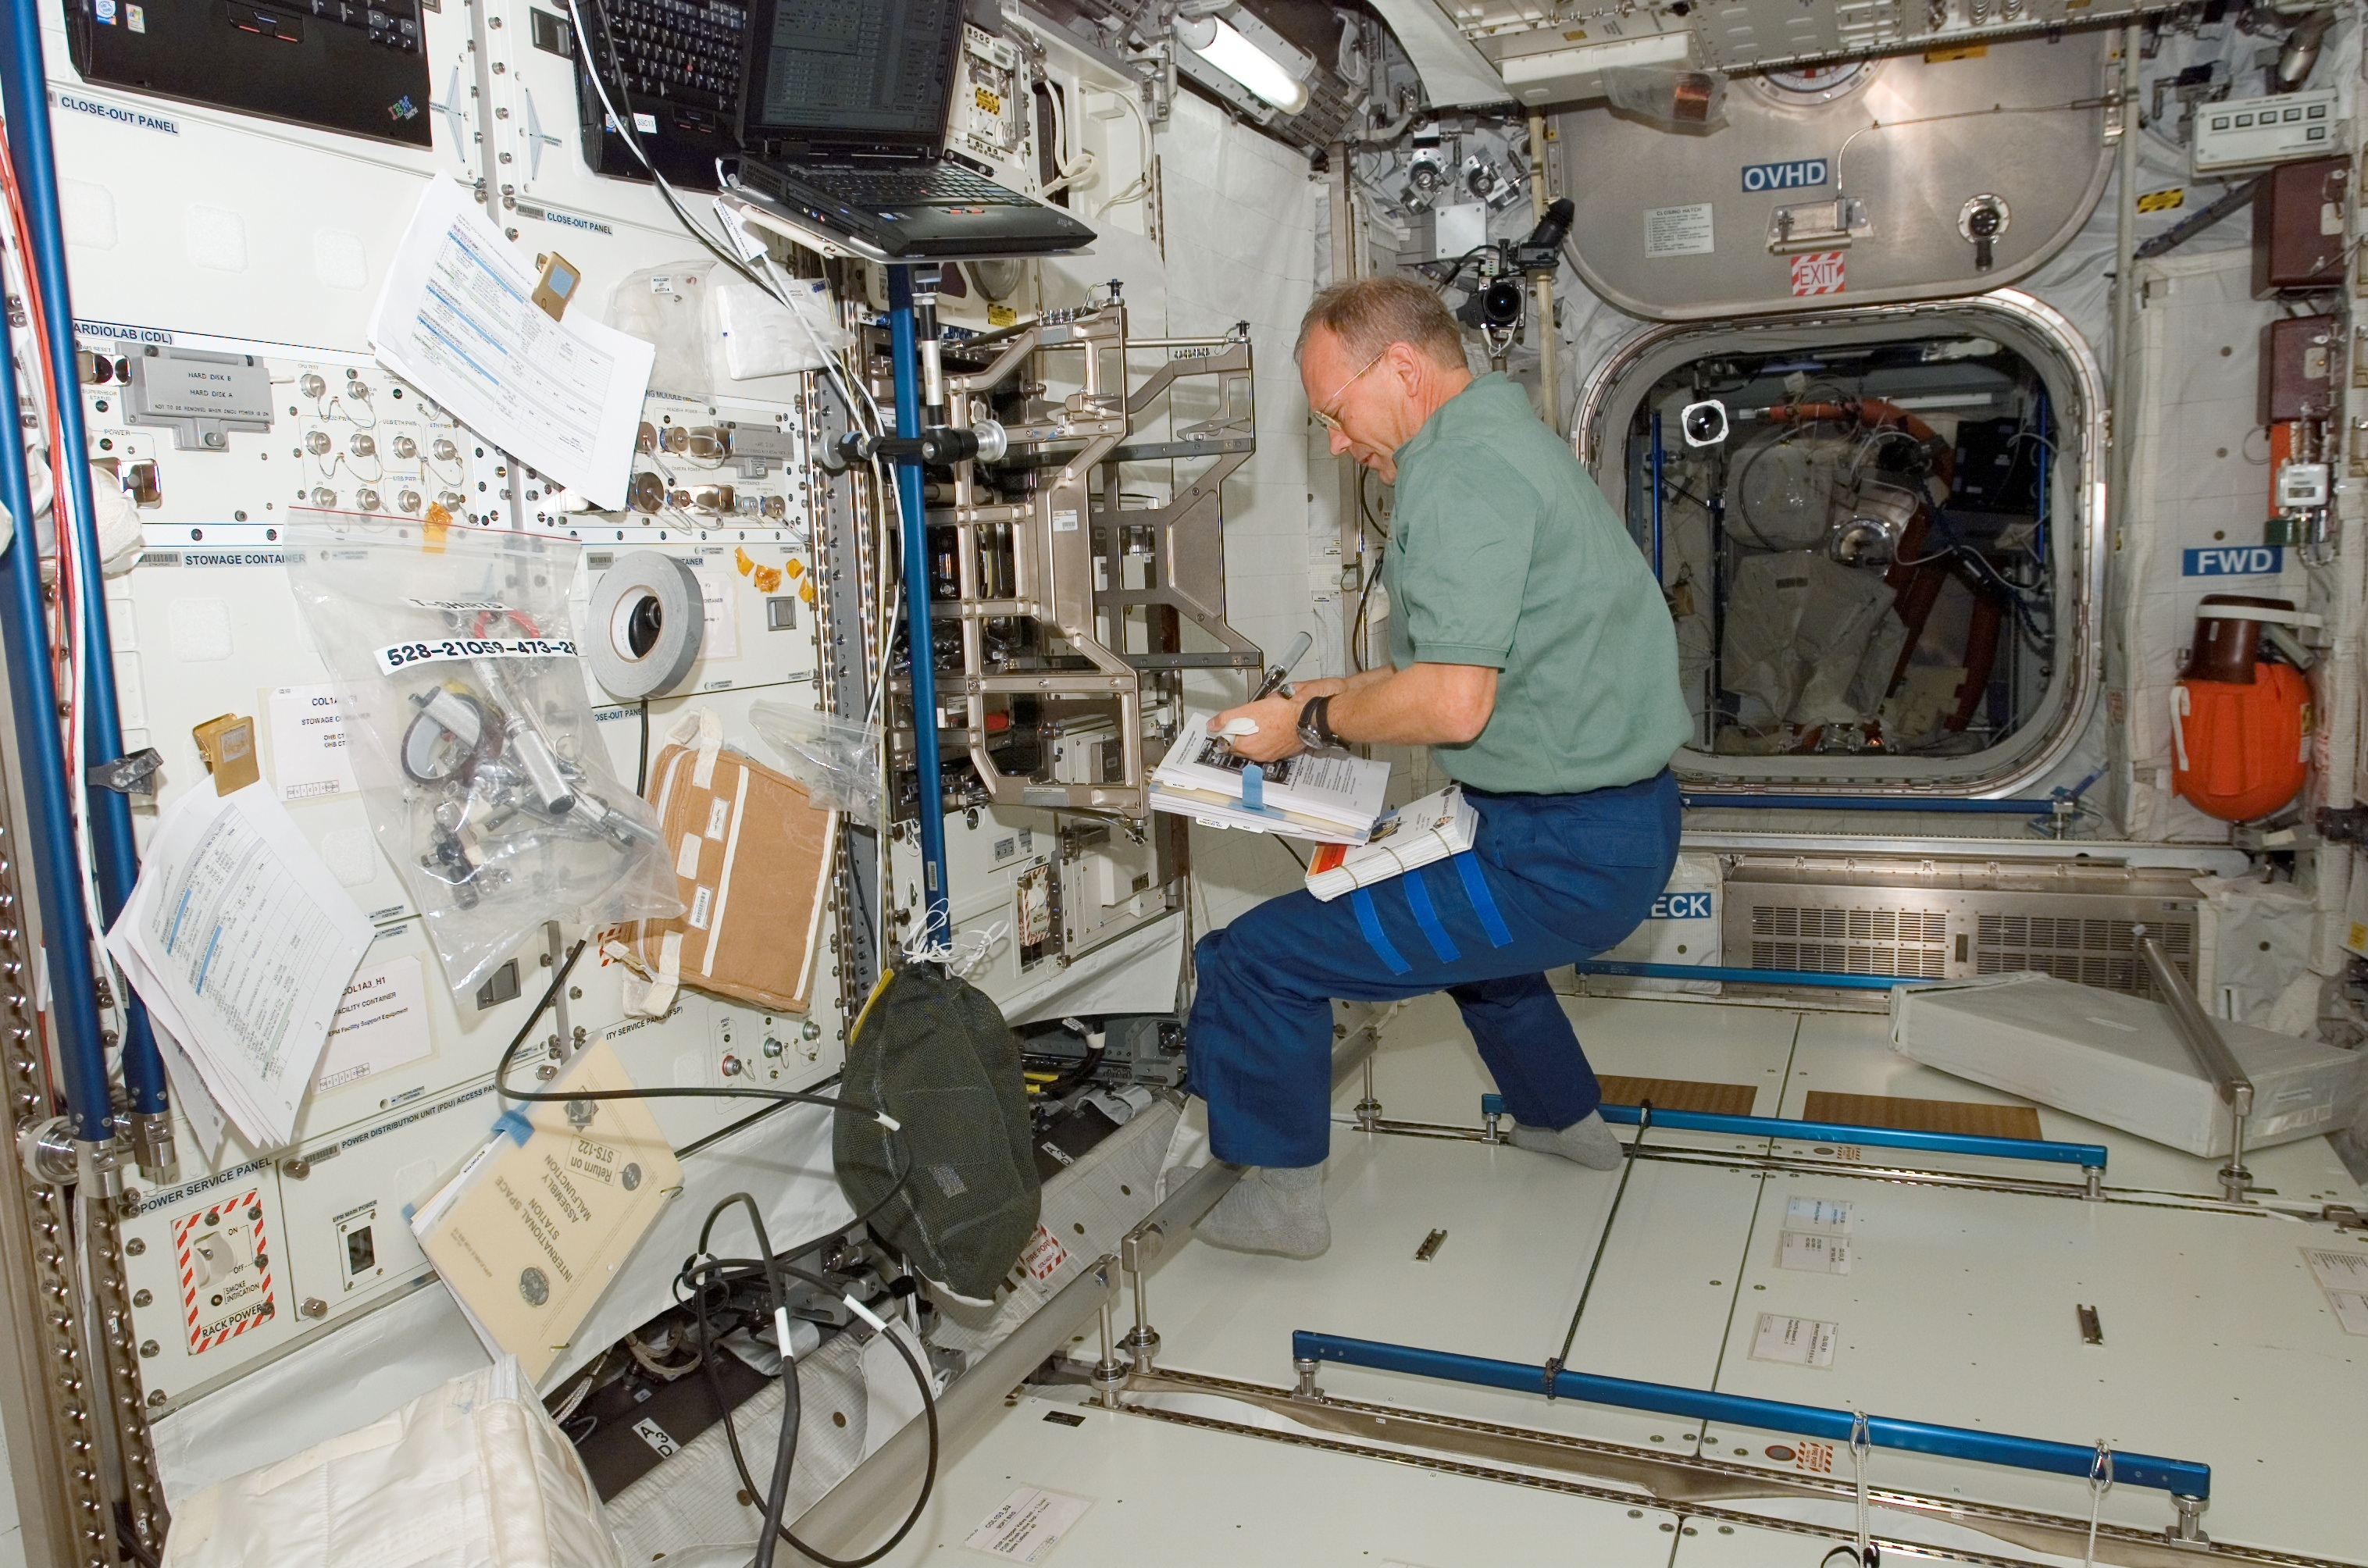 inside space station images - photo #42